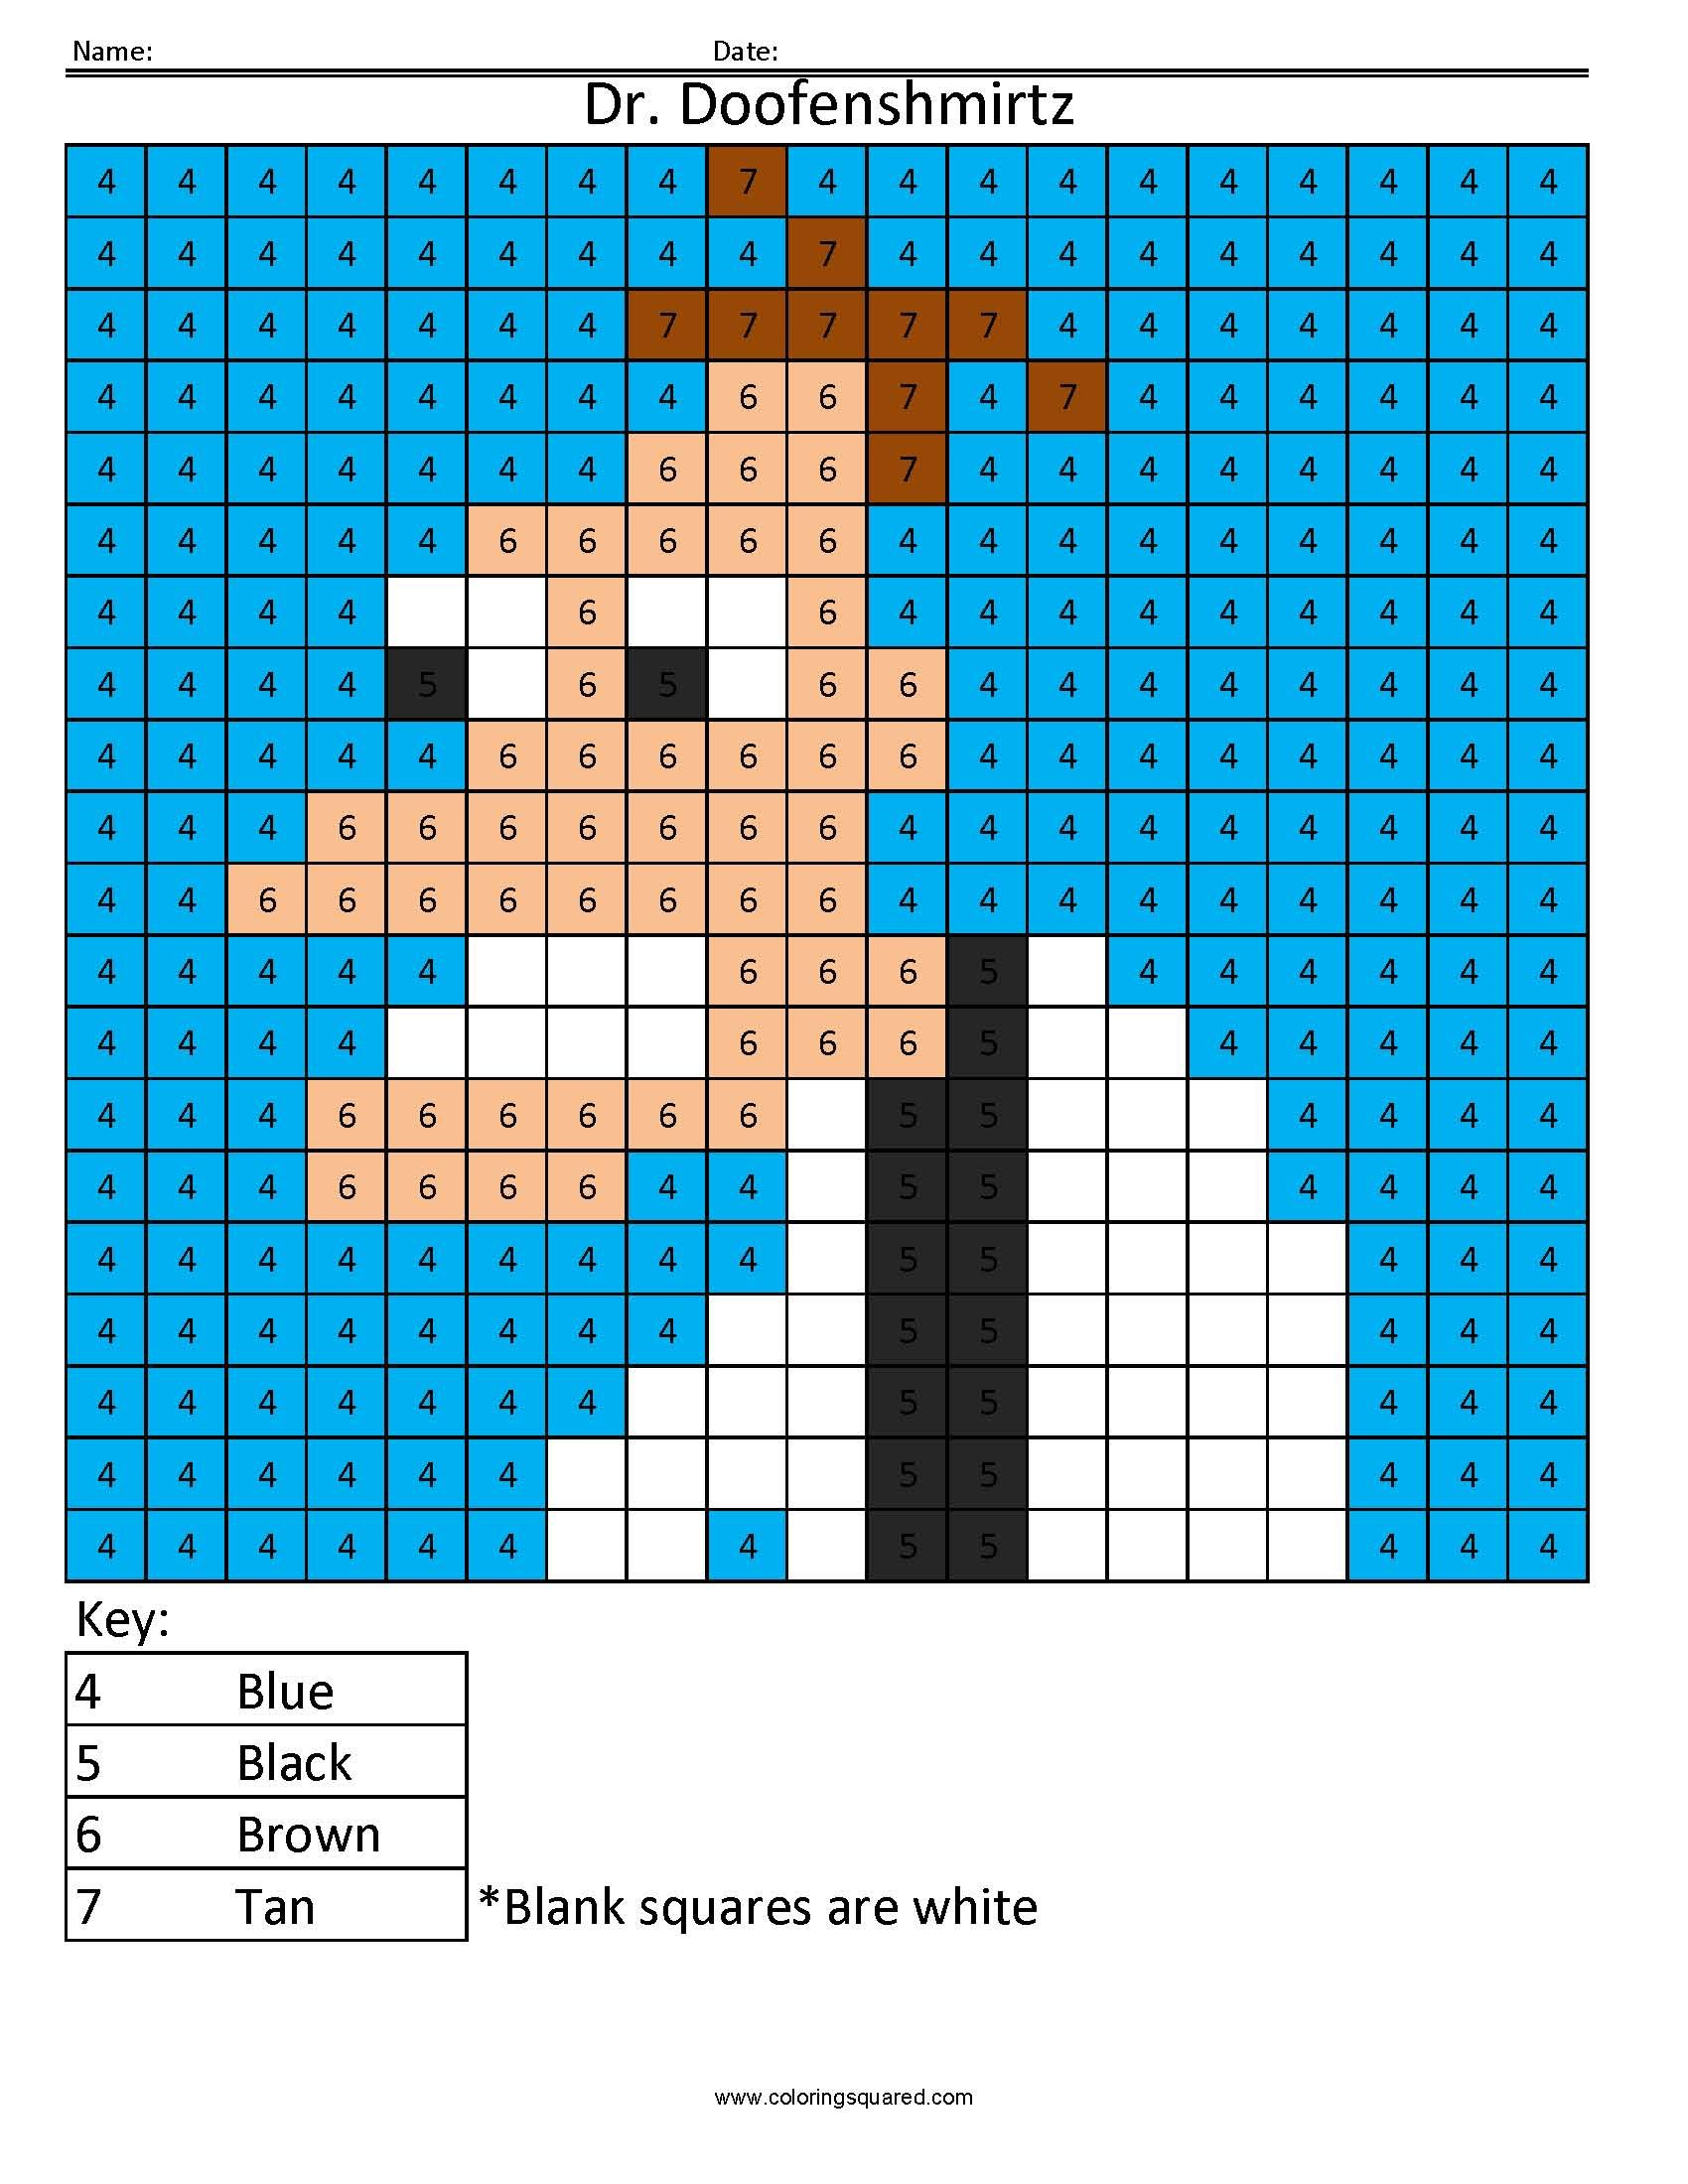 dr doofenshmirtz cartoon color by number coloring squared